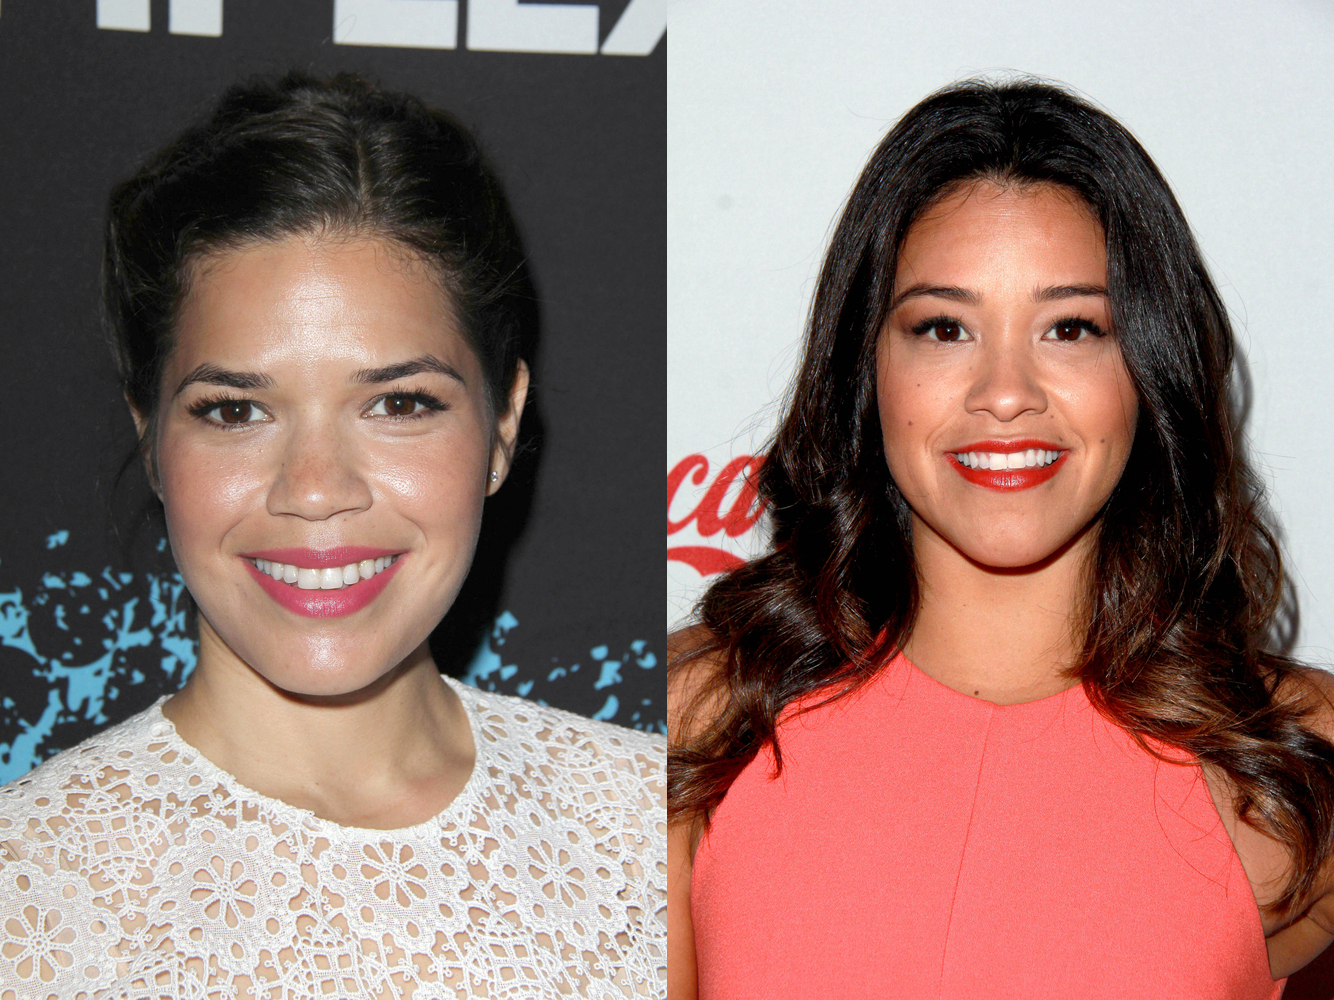 Here's how the Internet is responding to the Golden Globes mixing up America Ferrera and Gina Rodriguez